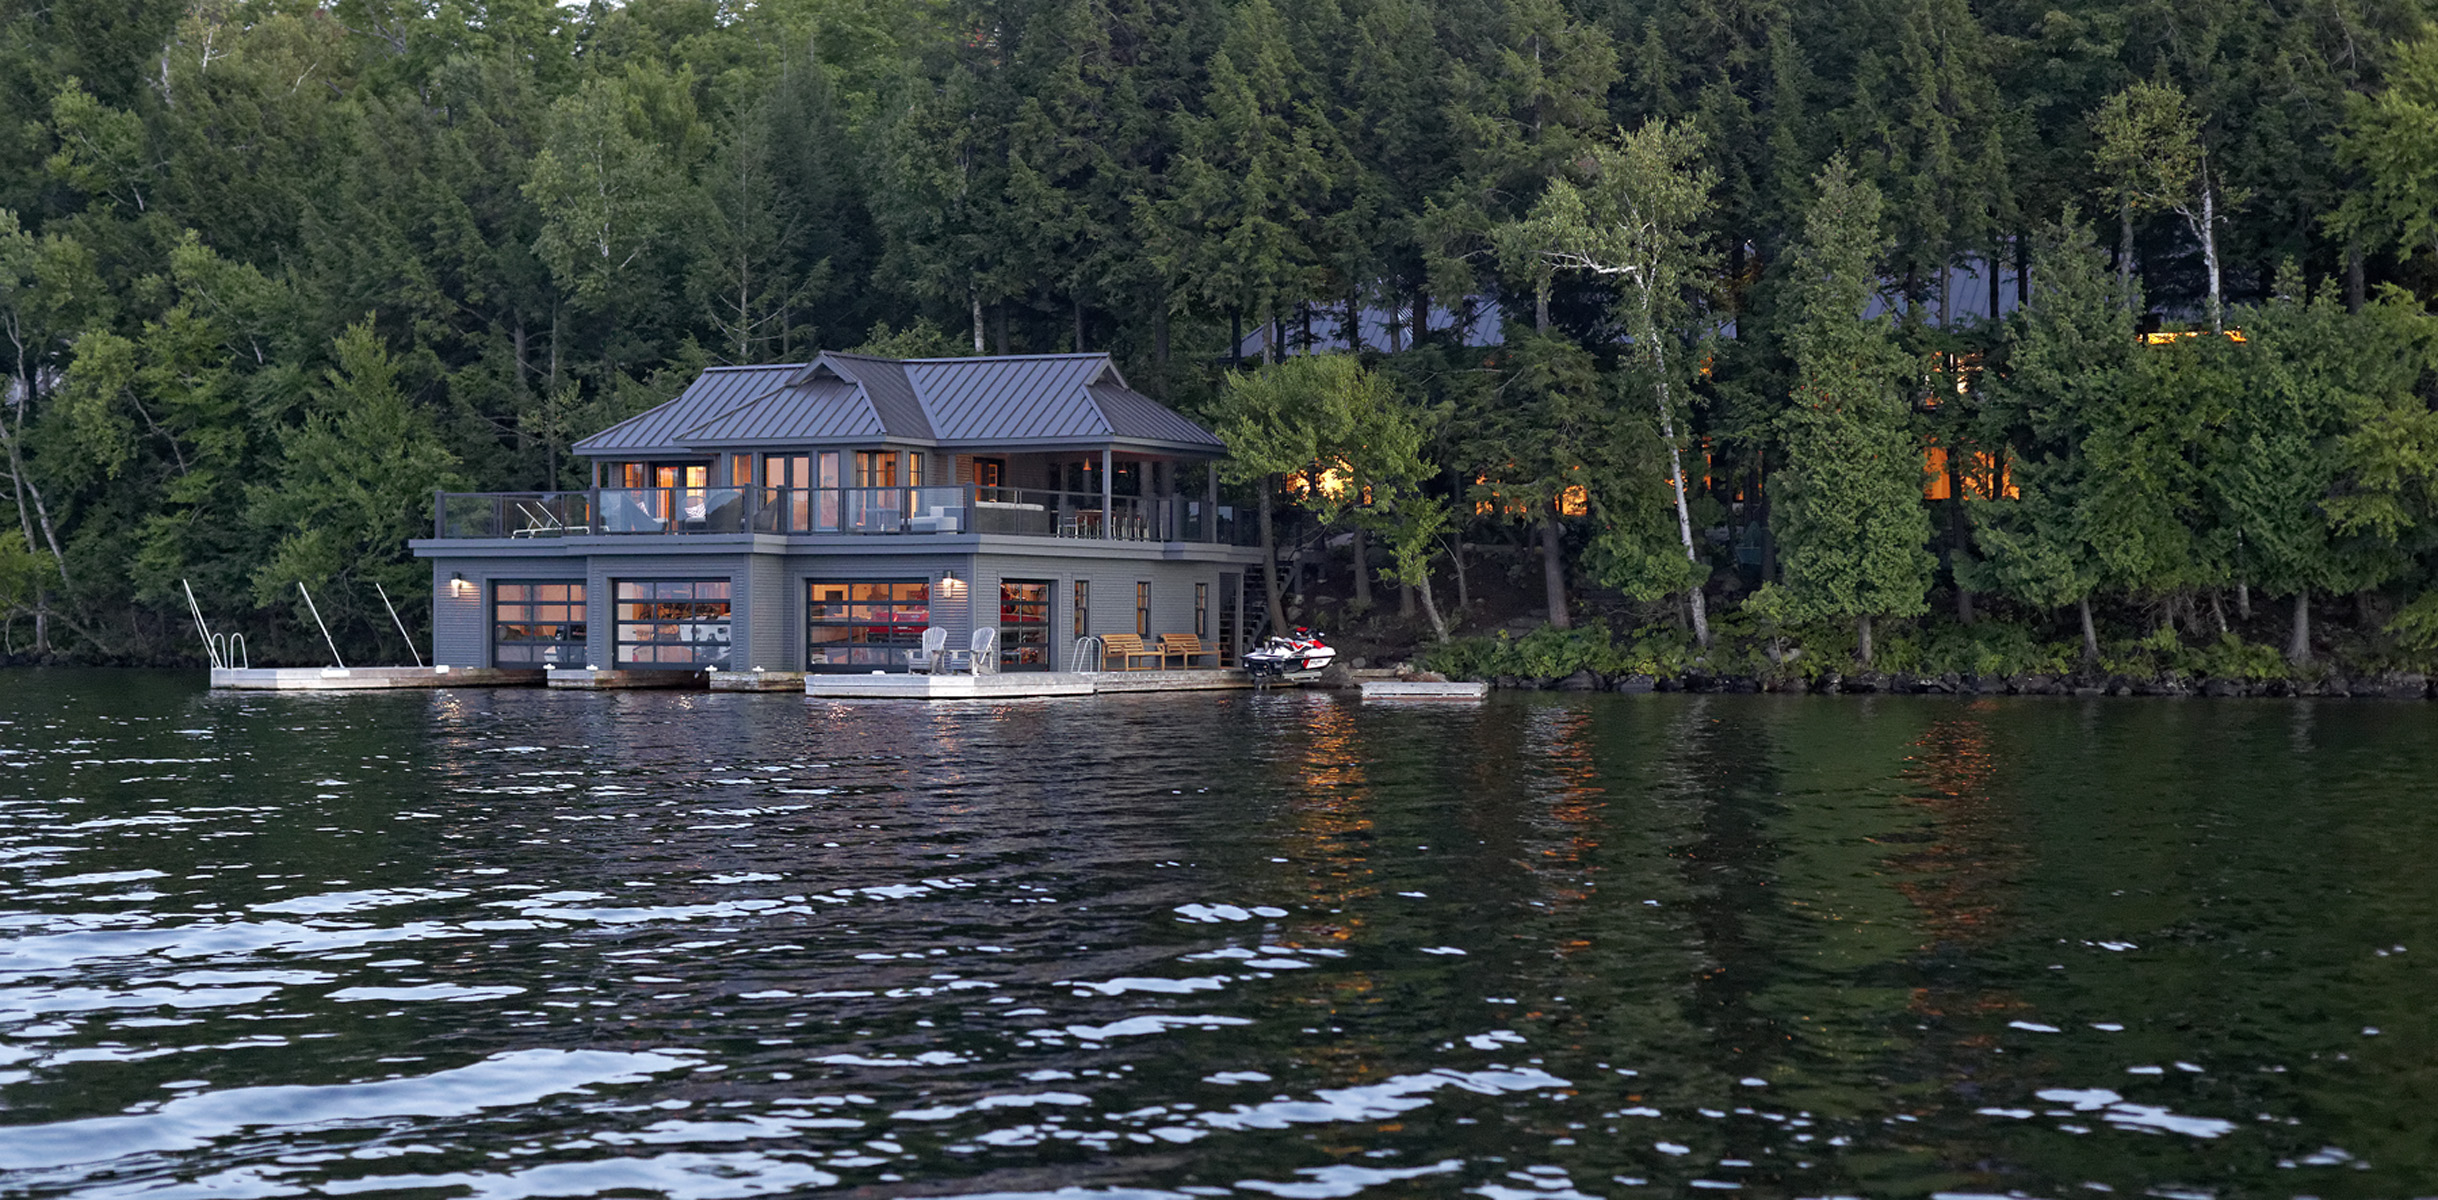 View from lake of illuminated three slip boathouse with living space above with cottage obscured by trees in background